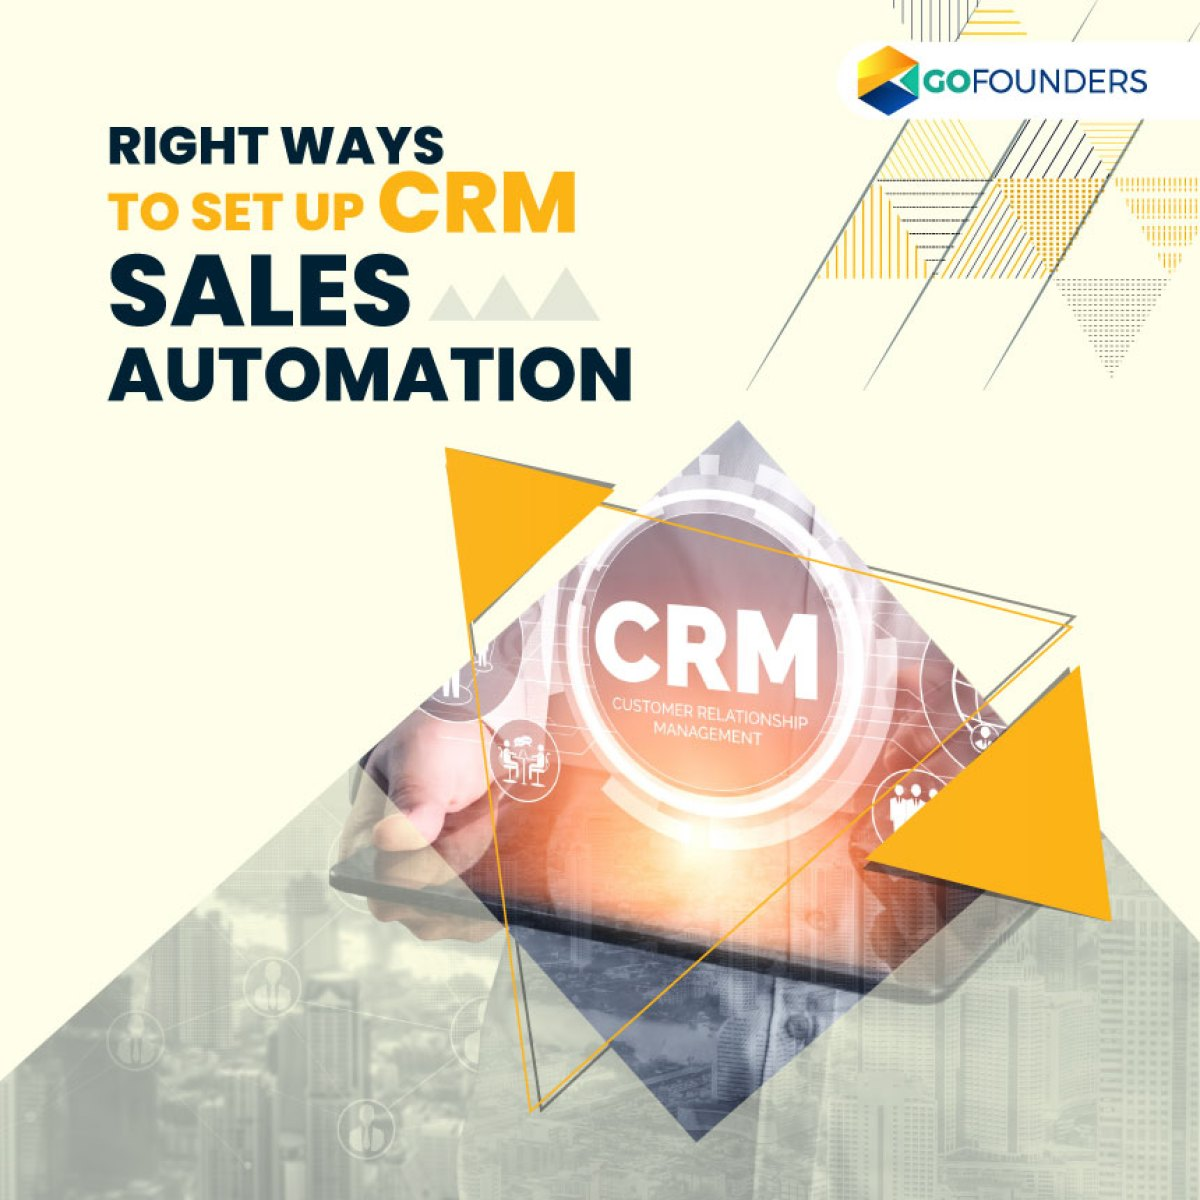 It has been seen that 74% of CRM users have seen improvement in their access to customer data because of the right CRM software. The right CRM software impacts the efficiency and productivity of an organization. And sales process automation is at the nucleus of a CRM's overall effectiveness.